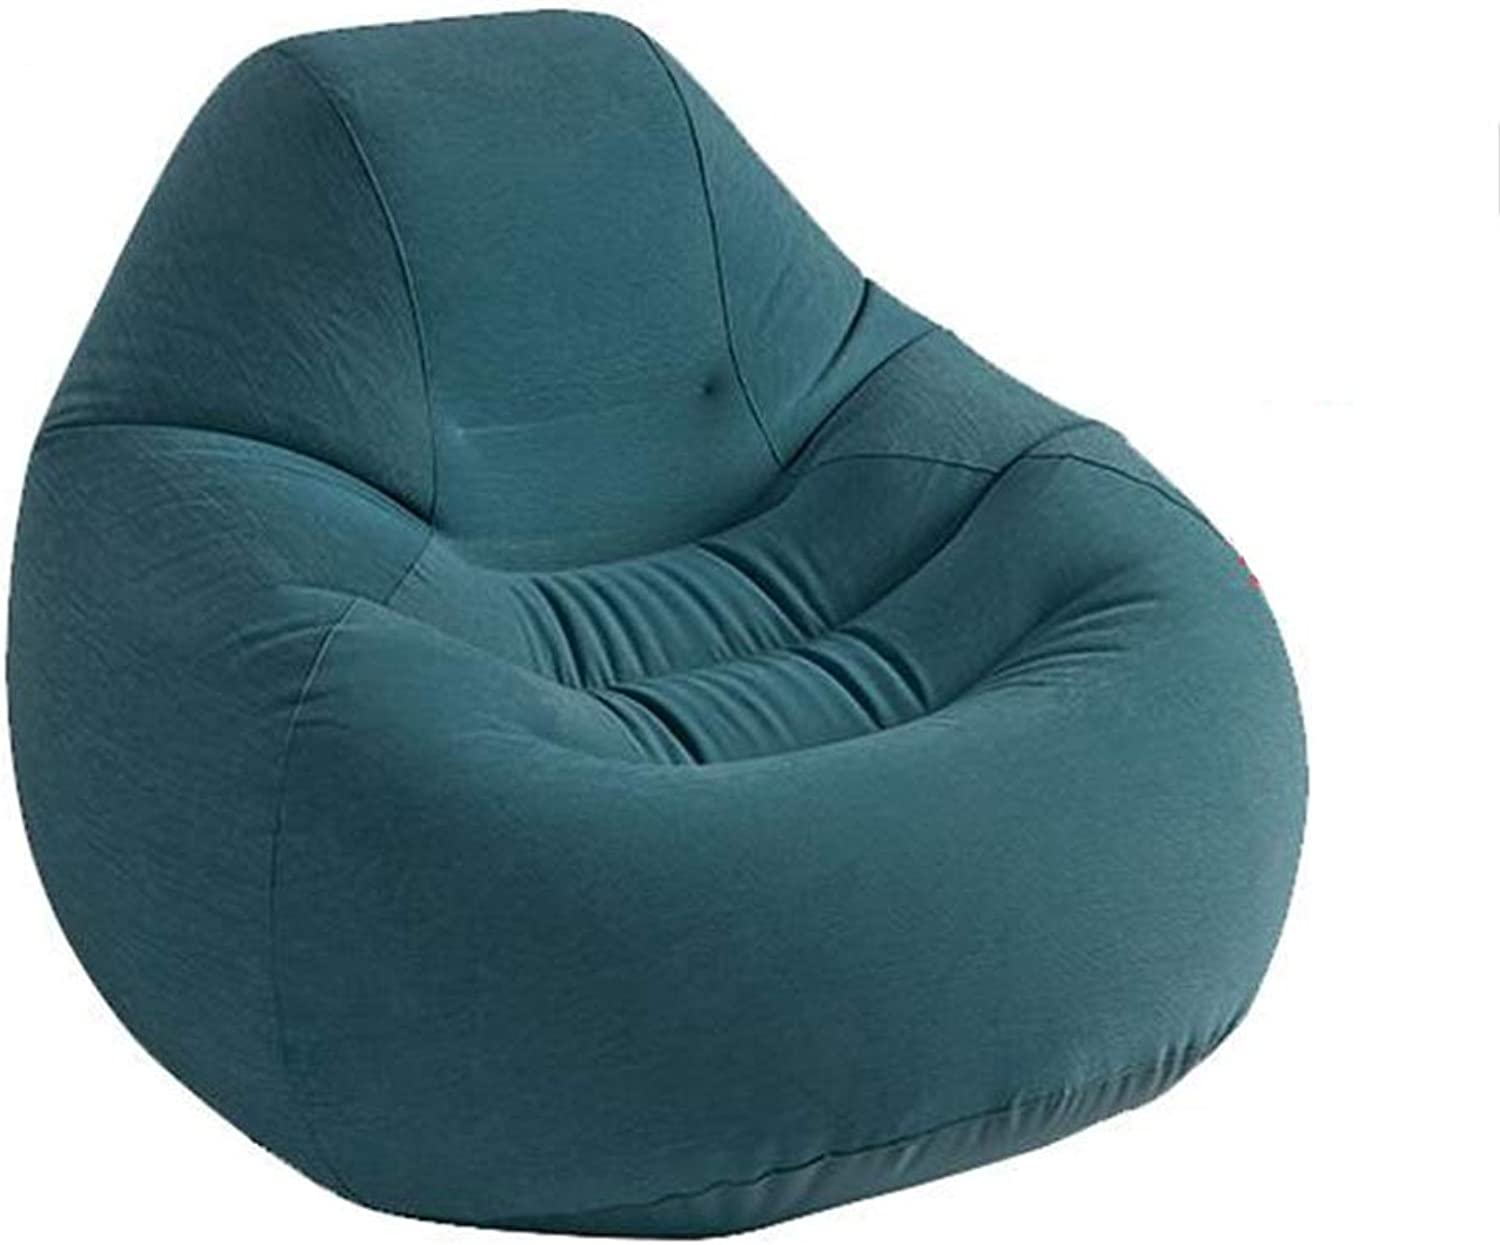 Sofas Bean Bags portable Cuddle Chair Washable Baby Sofa Kids Bedroom Fur (color   Green, Size   127  122  81cm)